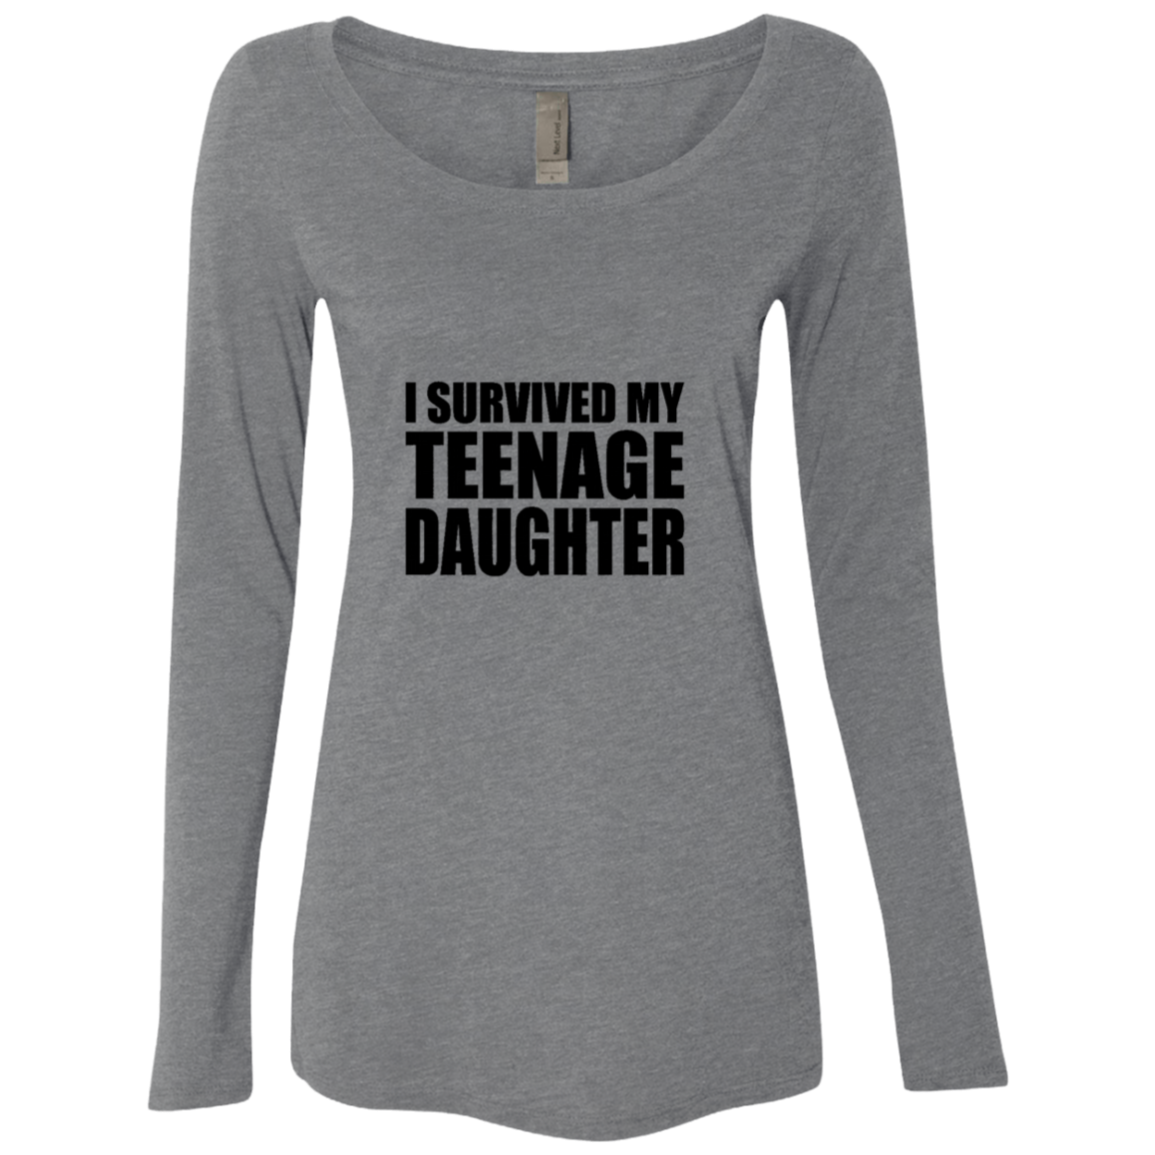 I Survived My Teenage Daughter Women's Long Sleeve Tee